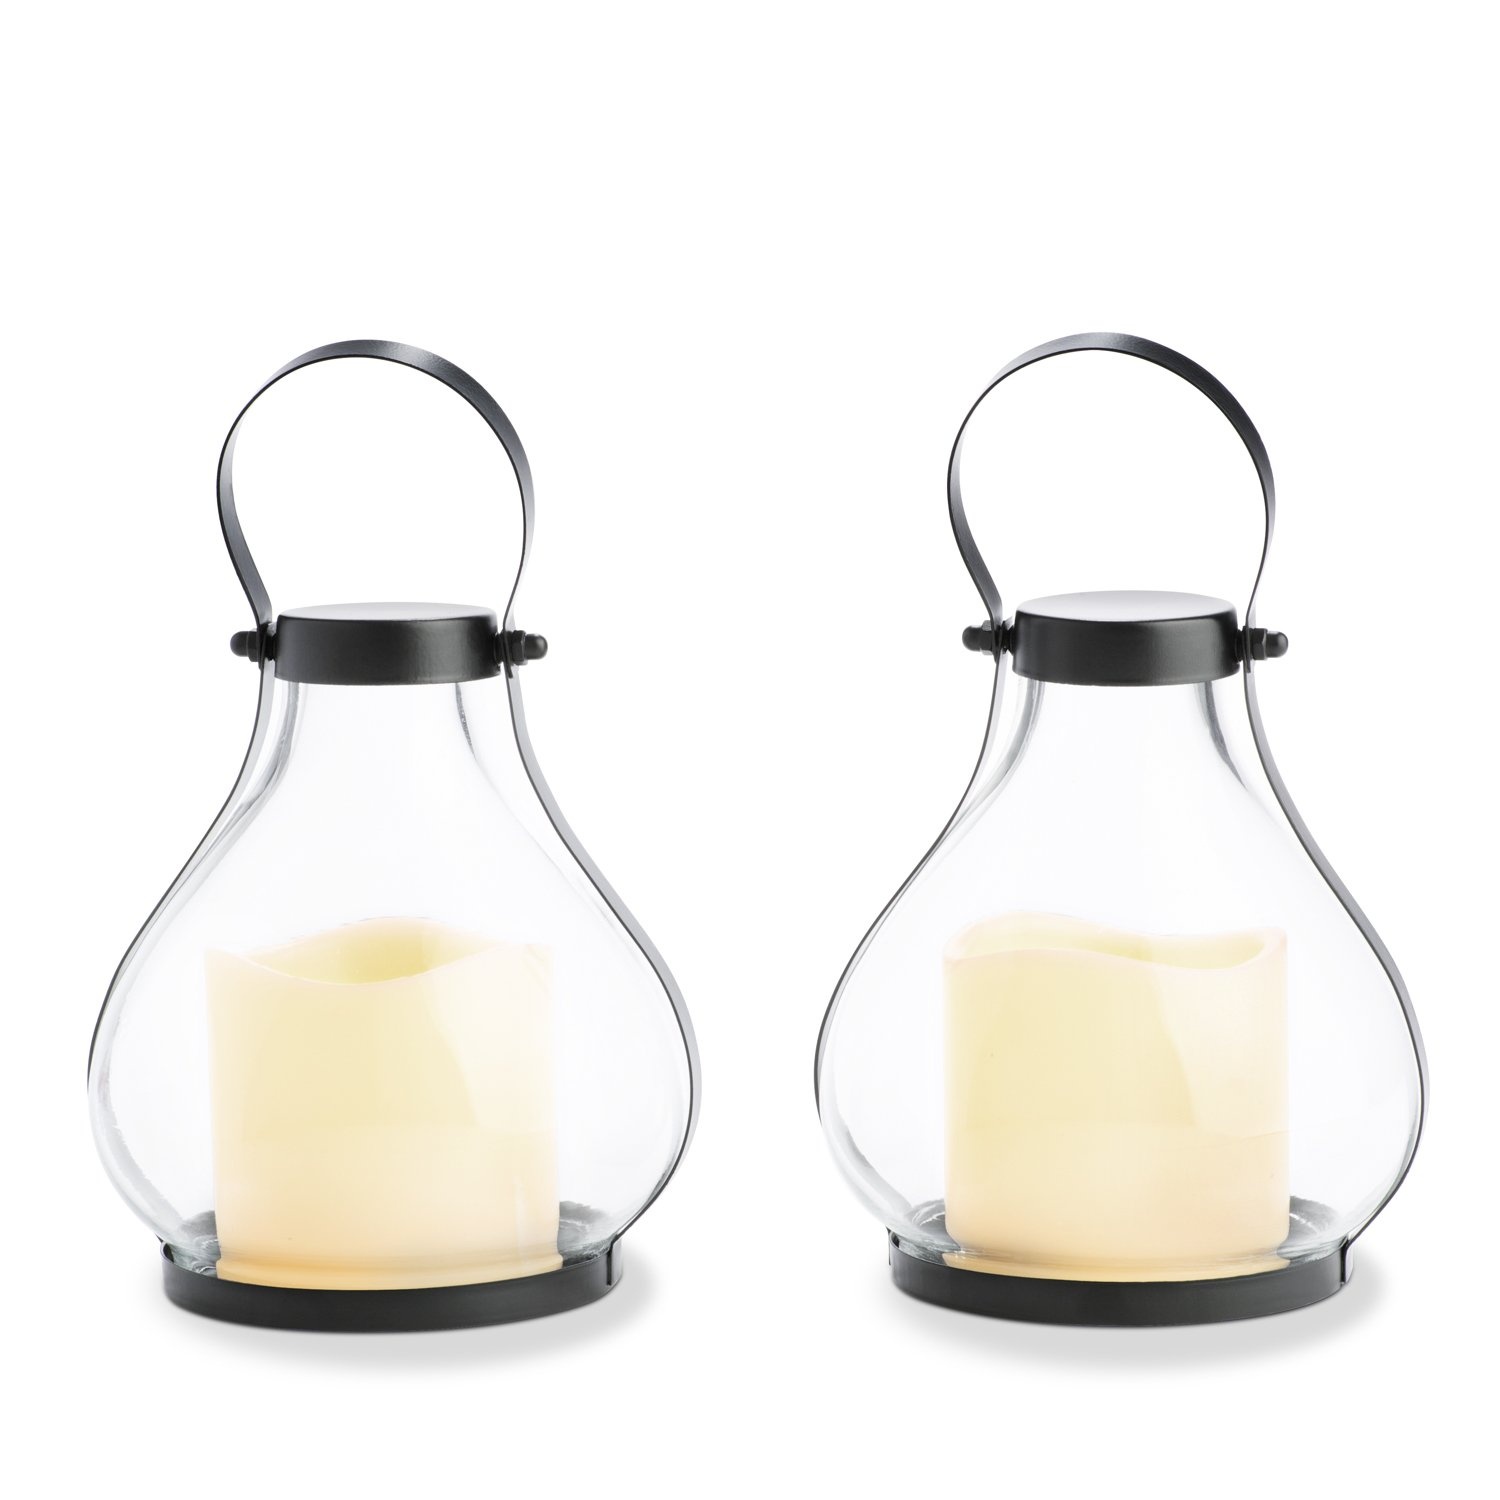 Mini Flameless Candle Lanterns - Decorative Metal and Glass Lantern Set, 8.5 Inch Height, Flickering LEDs, Indoor/Outdoor Use - 2 Pack